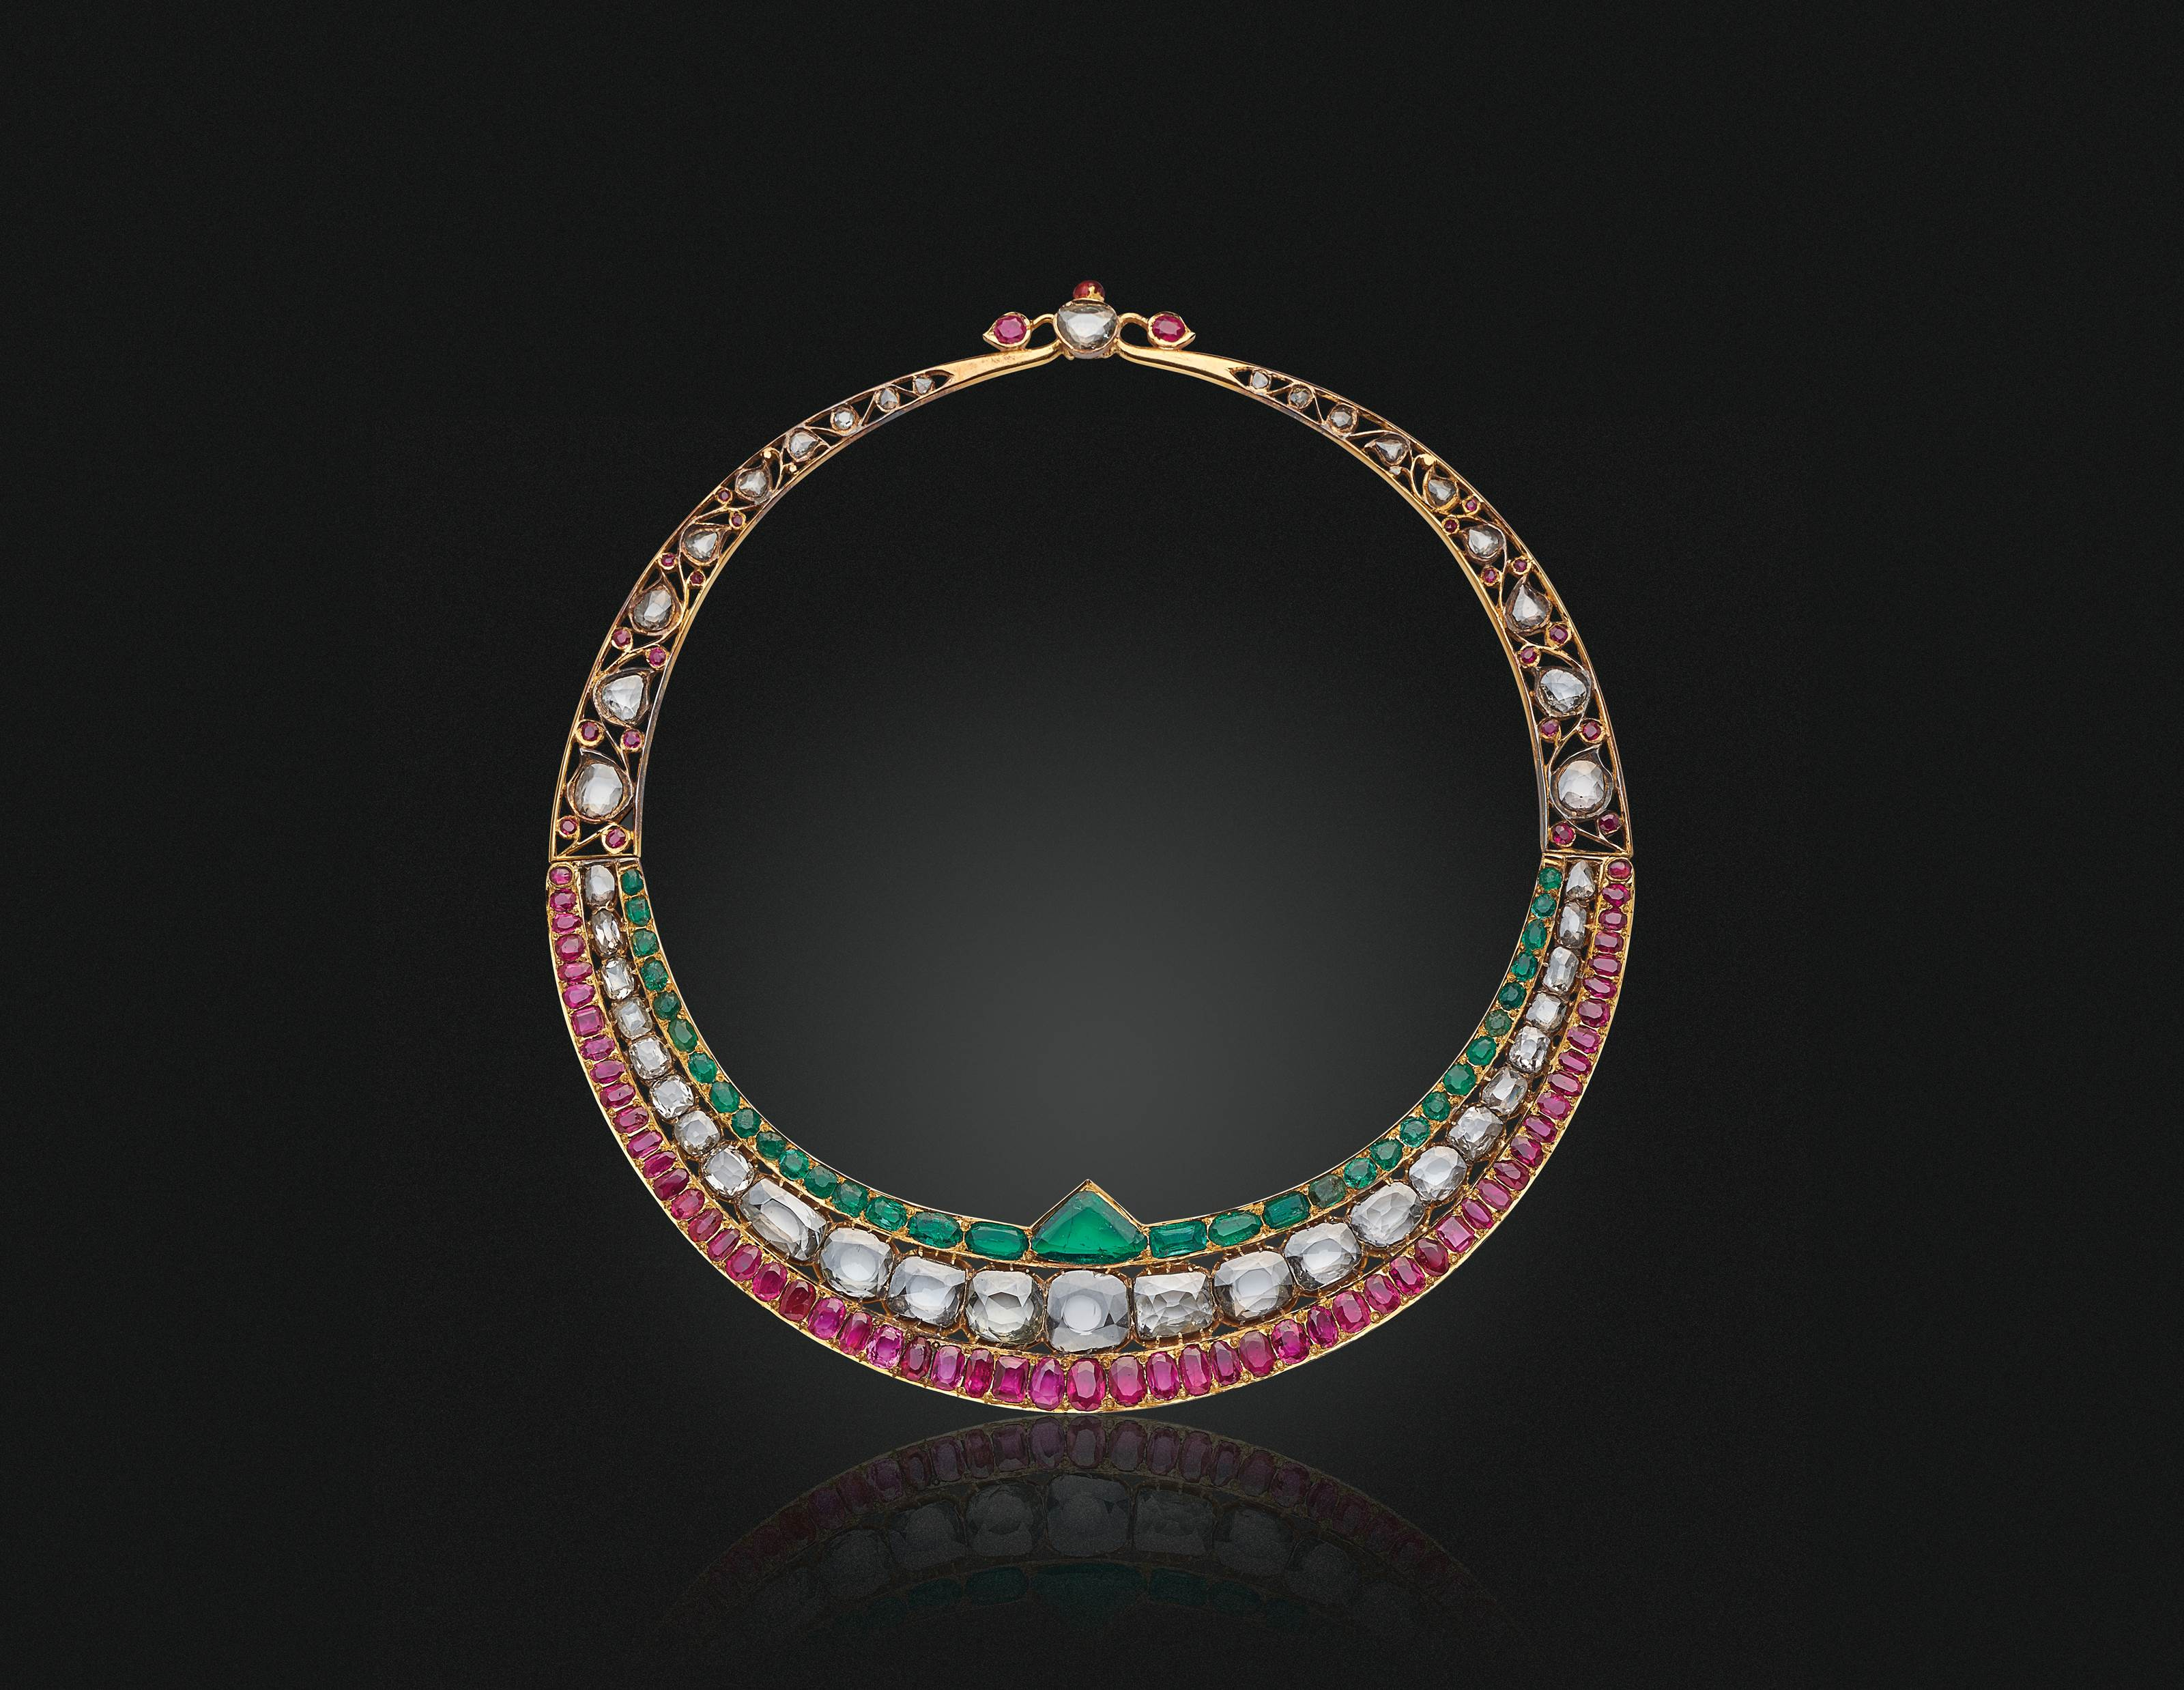 AN ANTIQUE DIAMOND, EMERALD, RUBY AND ENAMEL COLLAR NECKLACE